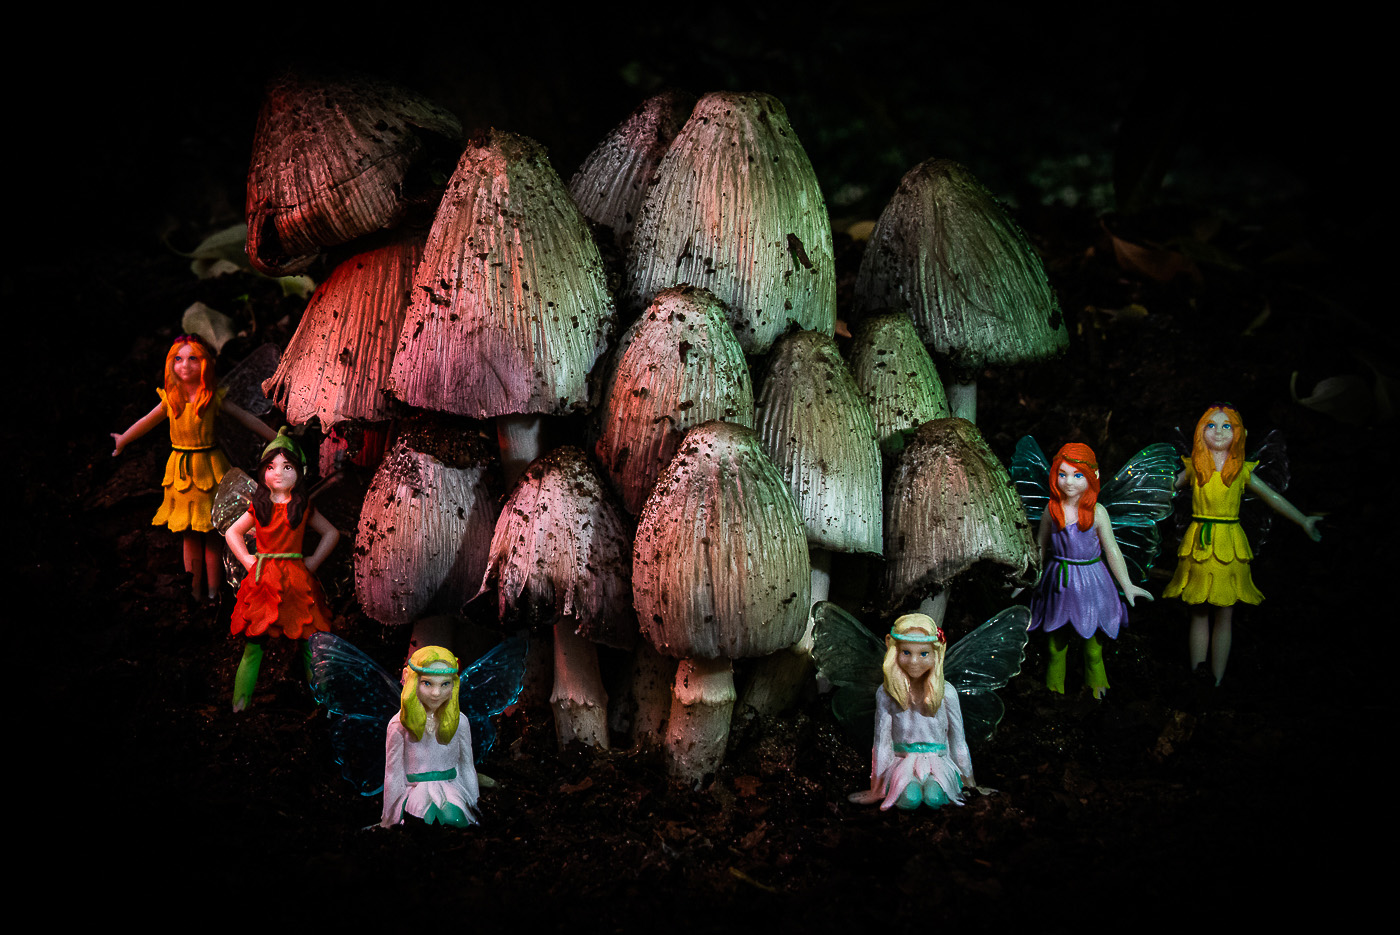 At Home with the Fairies